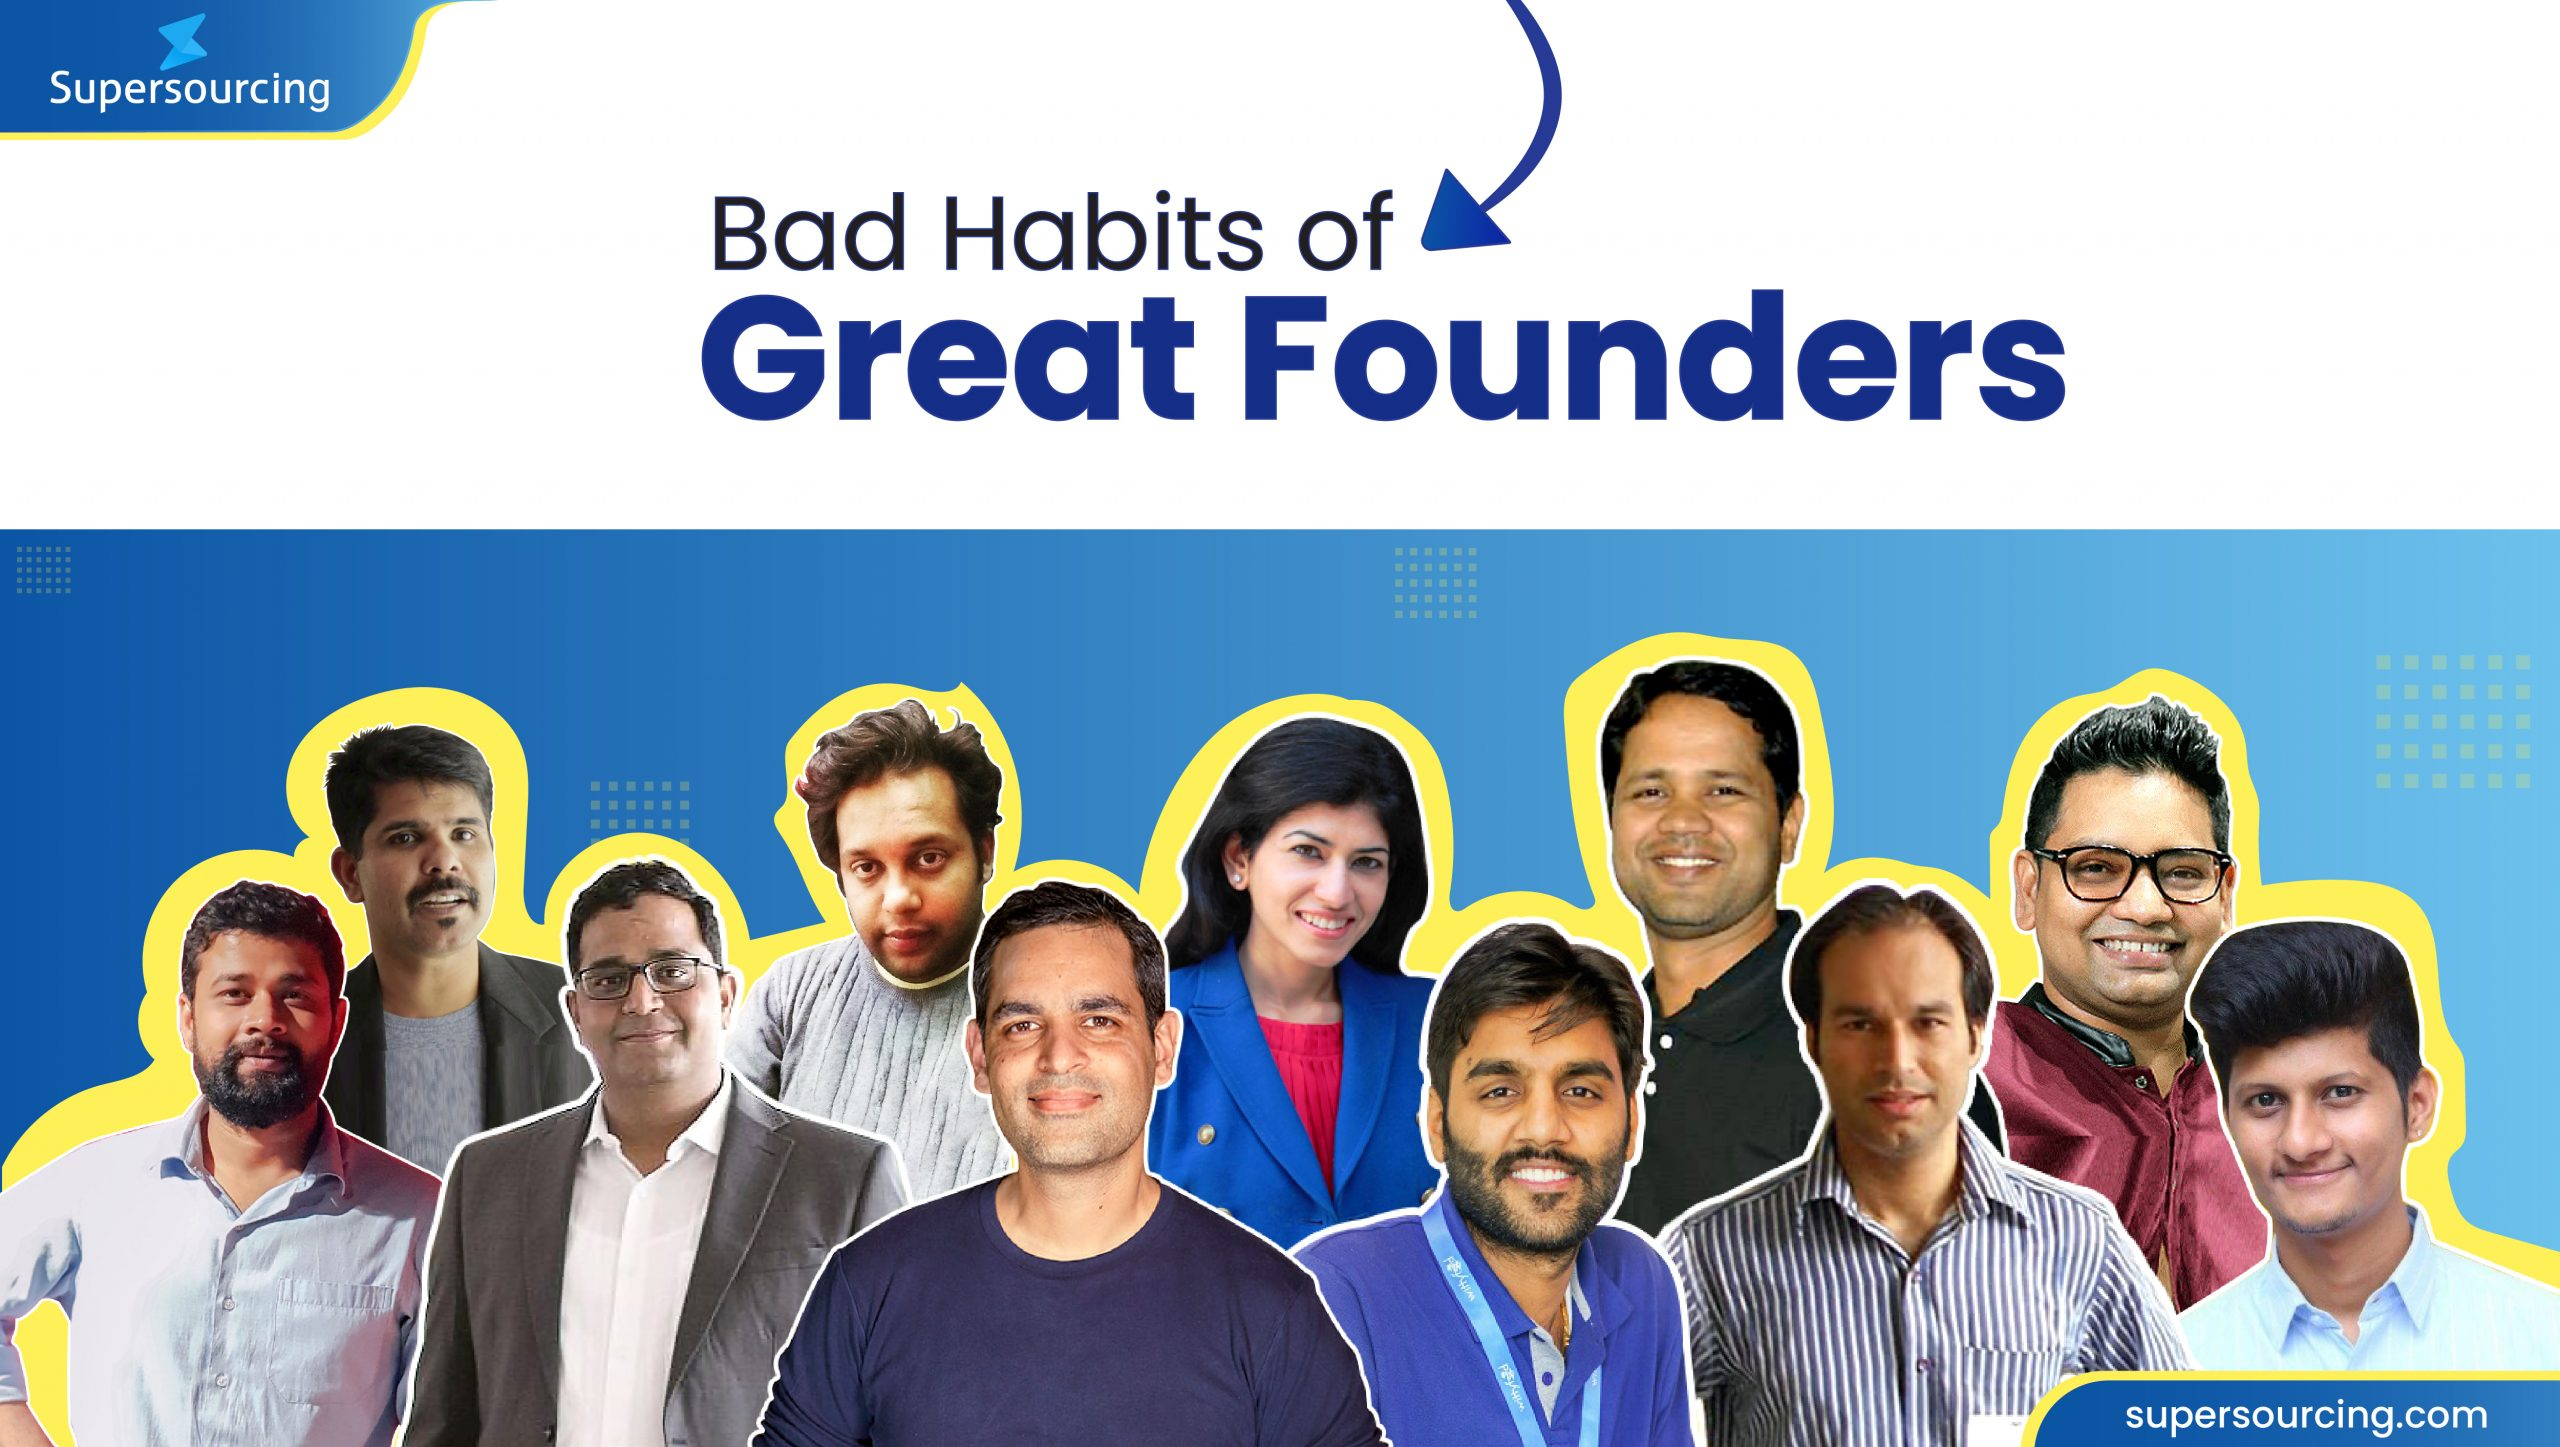 Bad Habits of Great Founders